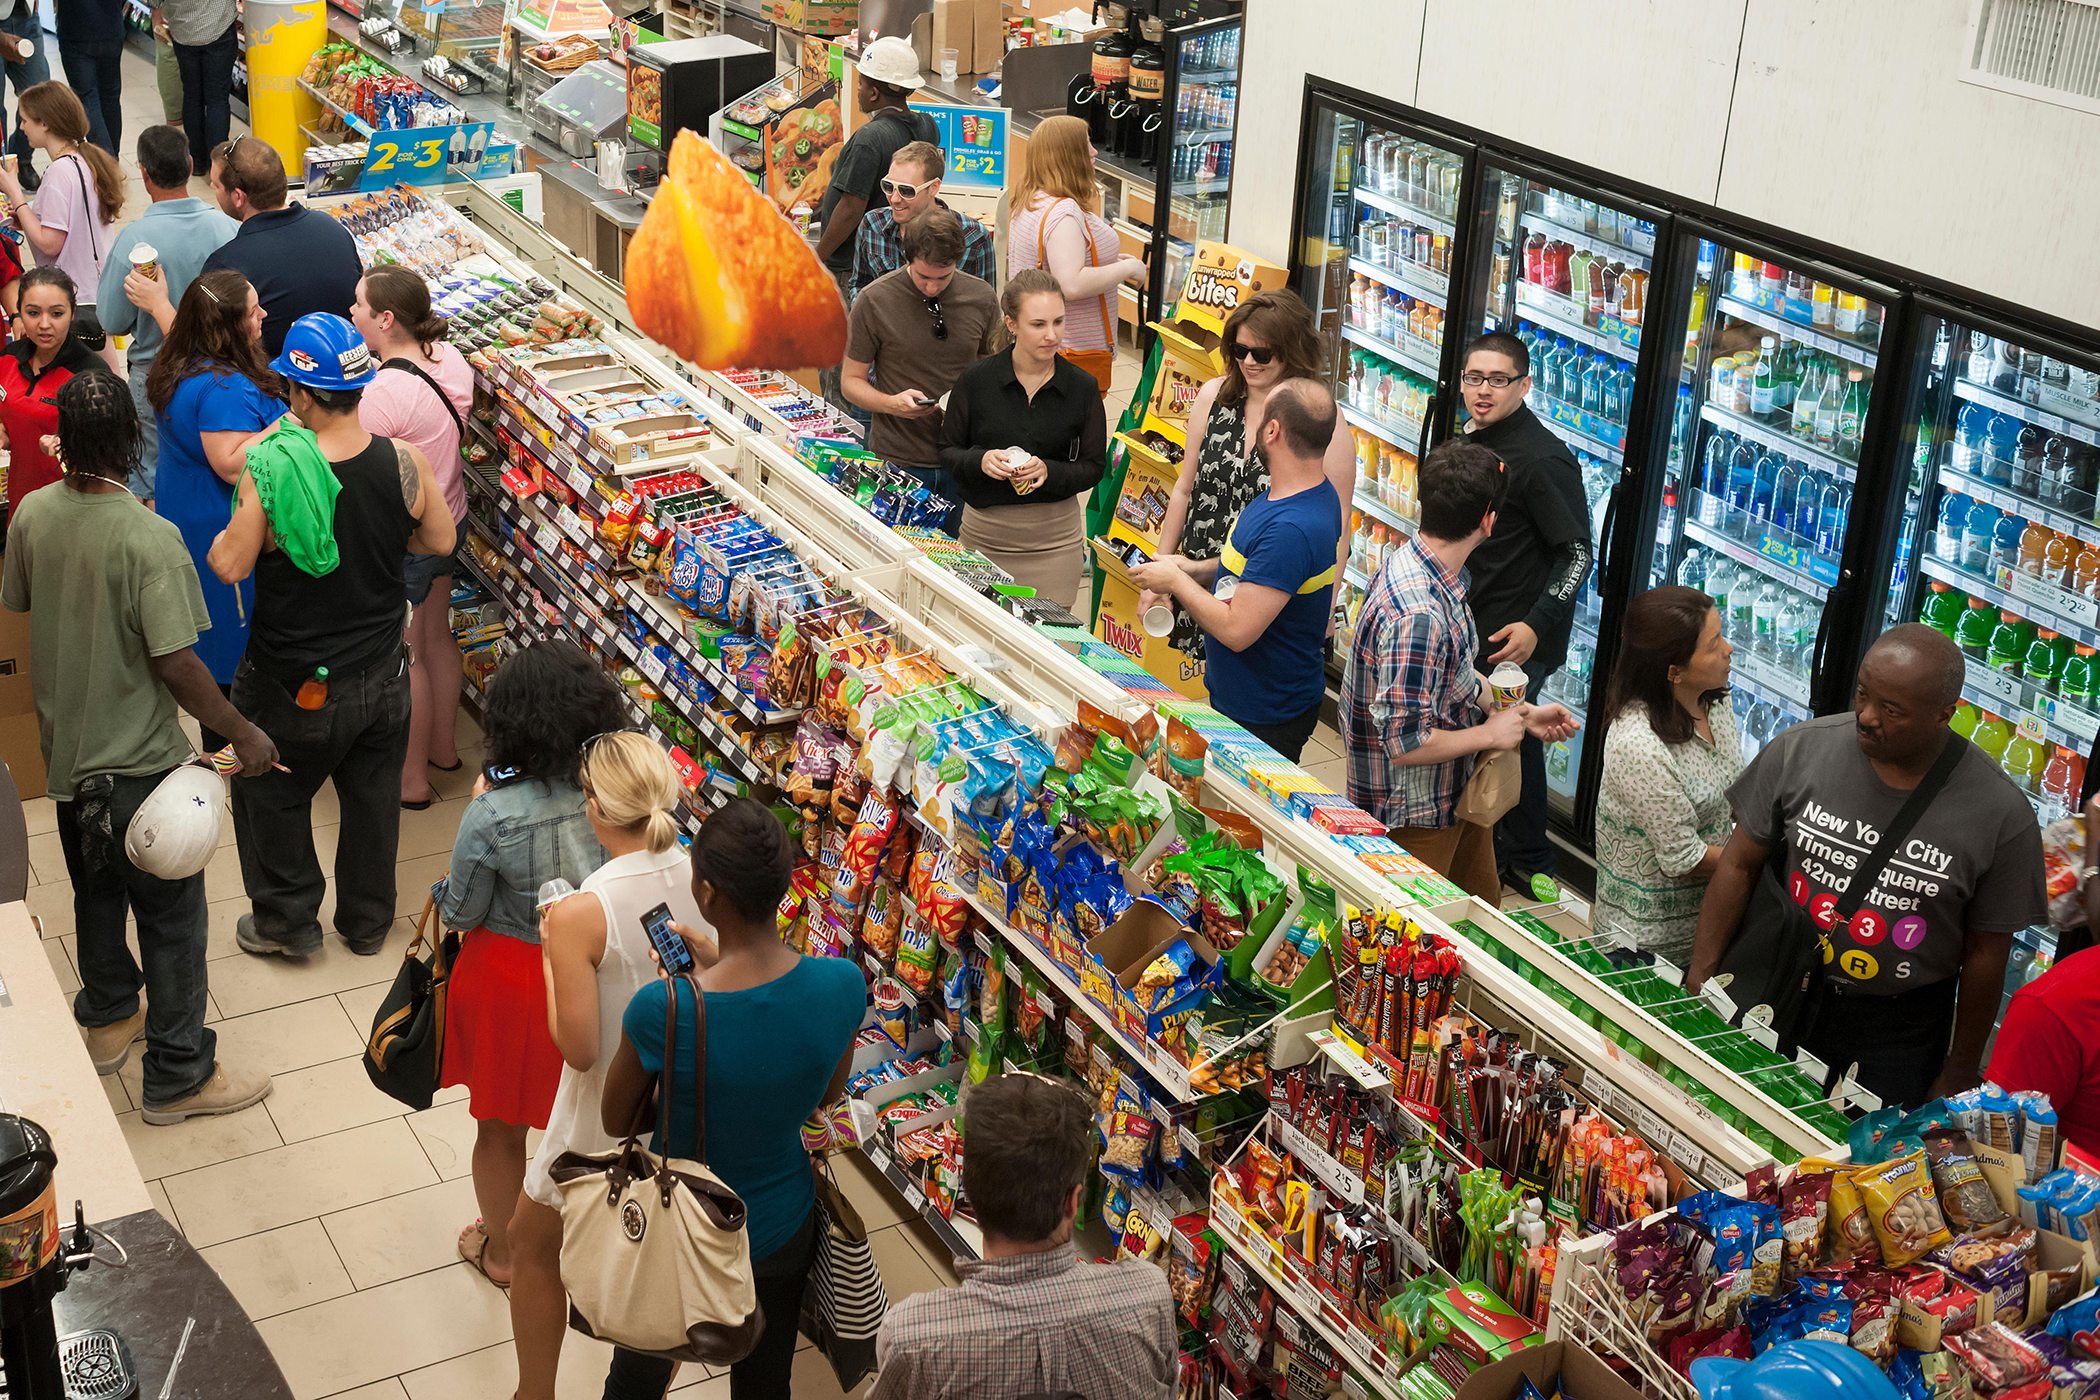 Customers line up for their free Slurpees in a 7-Eleven store in New York